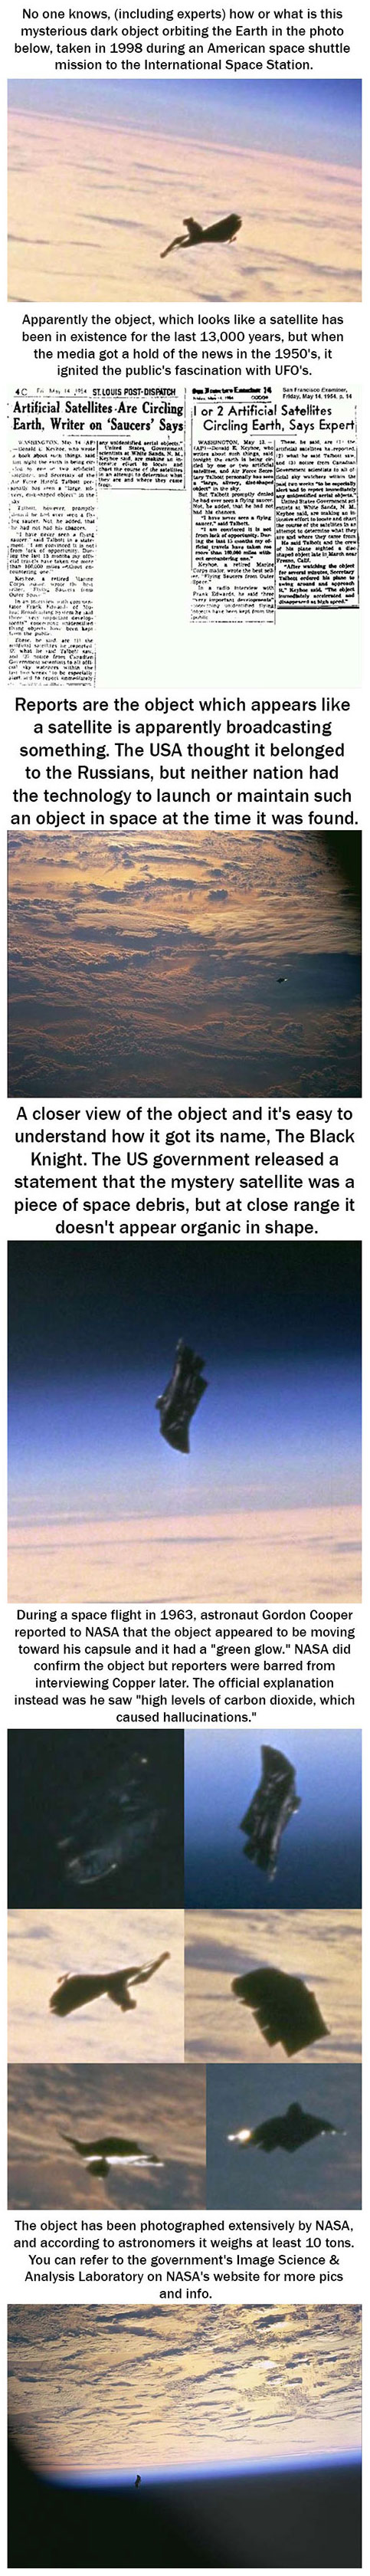 Black Knight Satellite UFO 2015